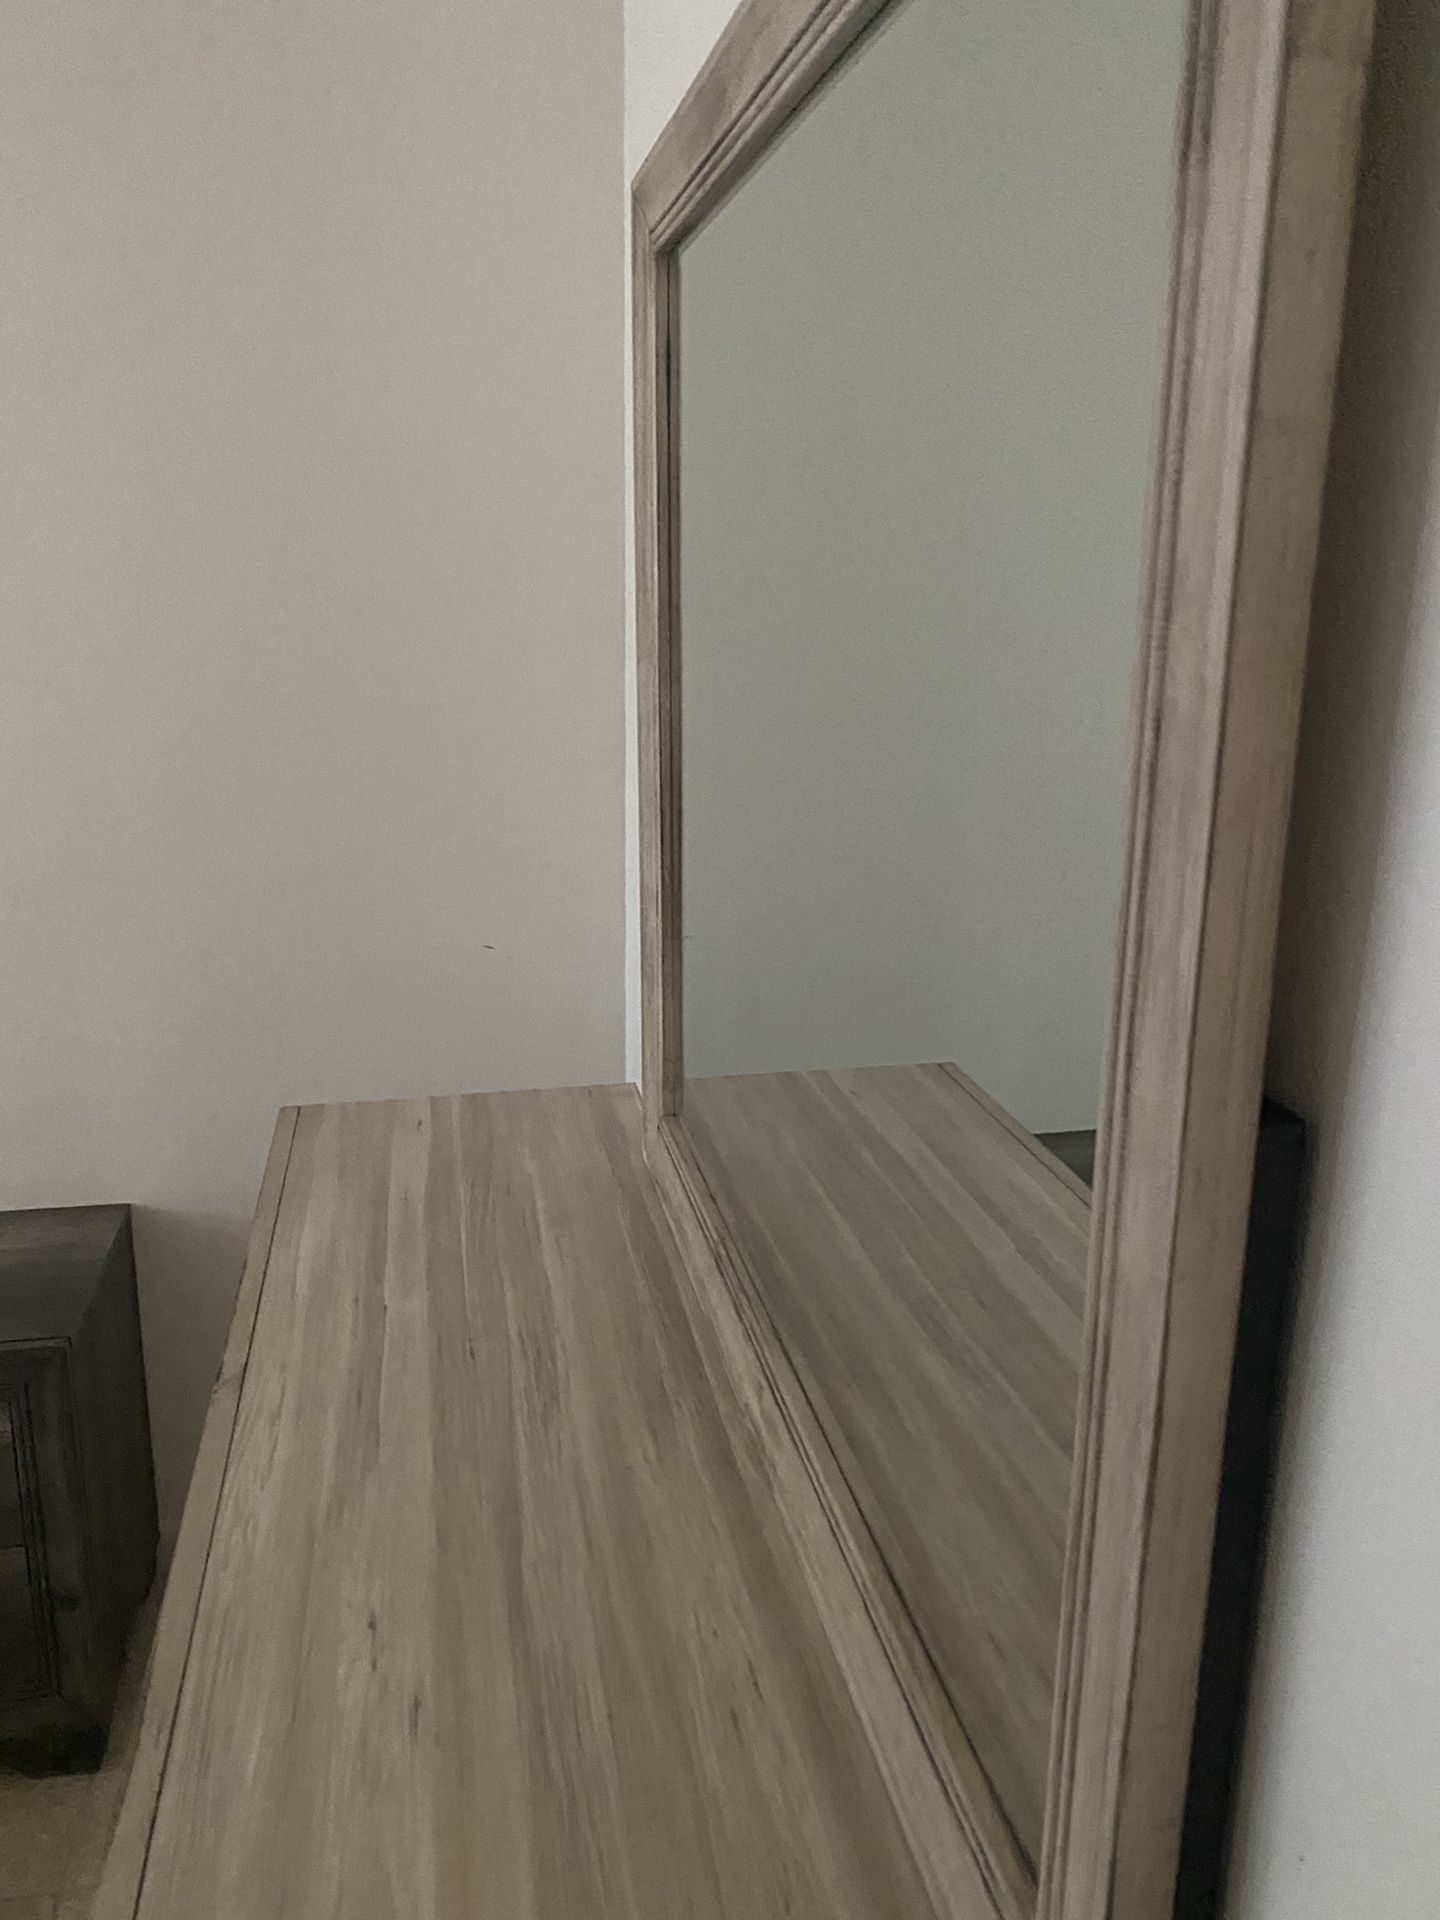 Real Wood Bedroom Set Including Mattress Like New Clean And Well Taken Care Of Barely Used